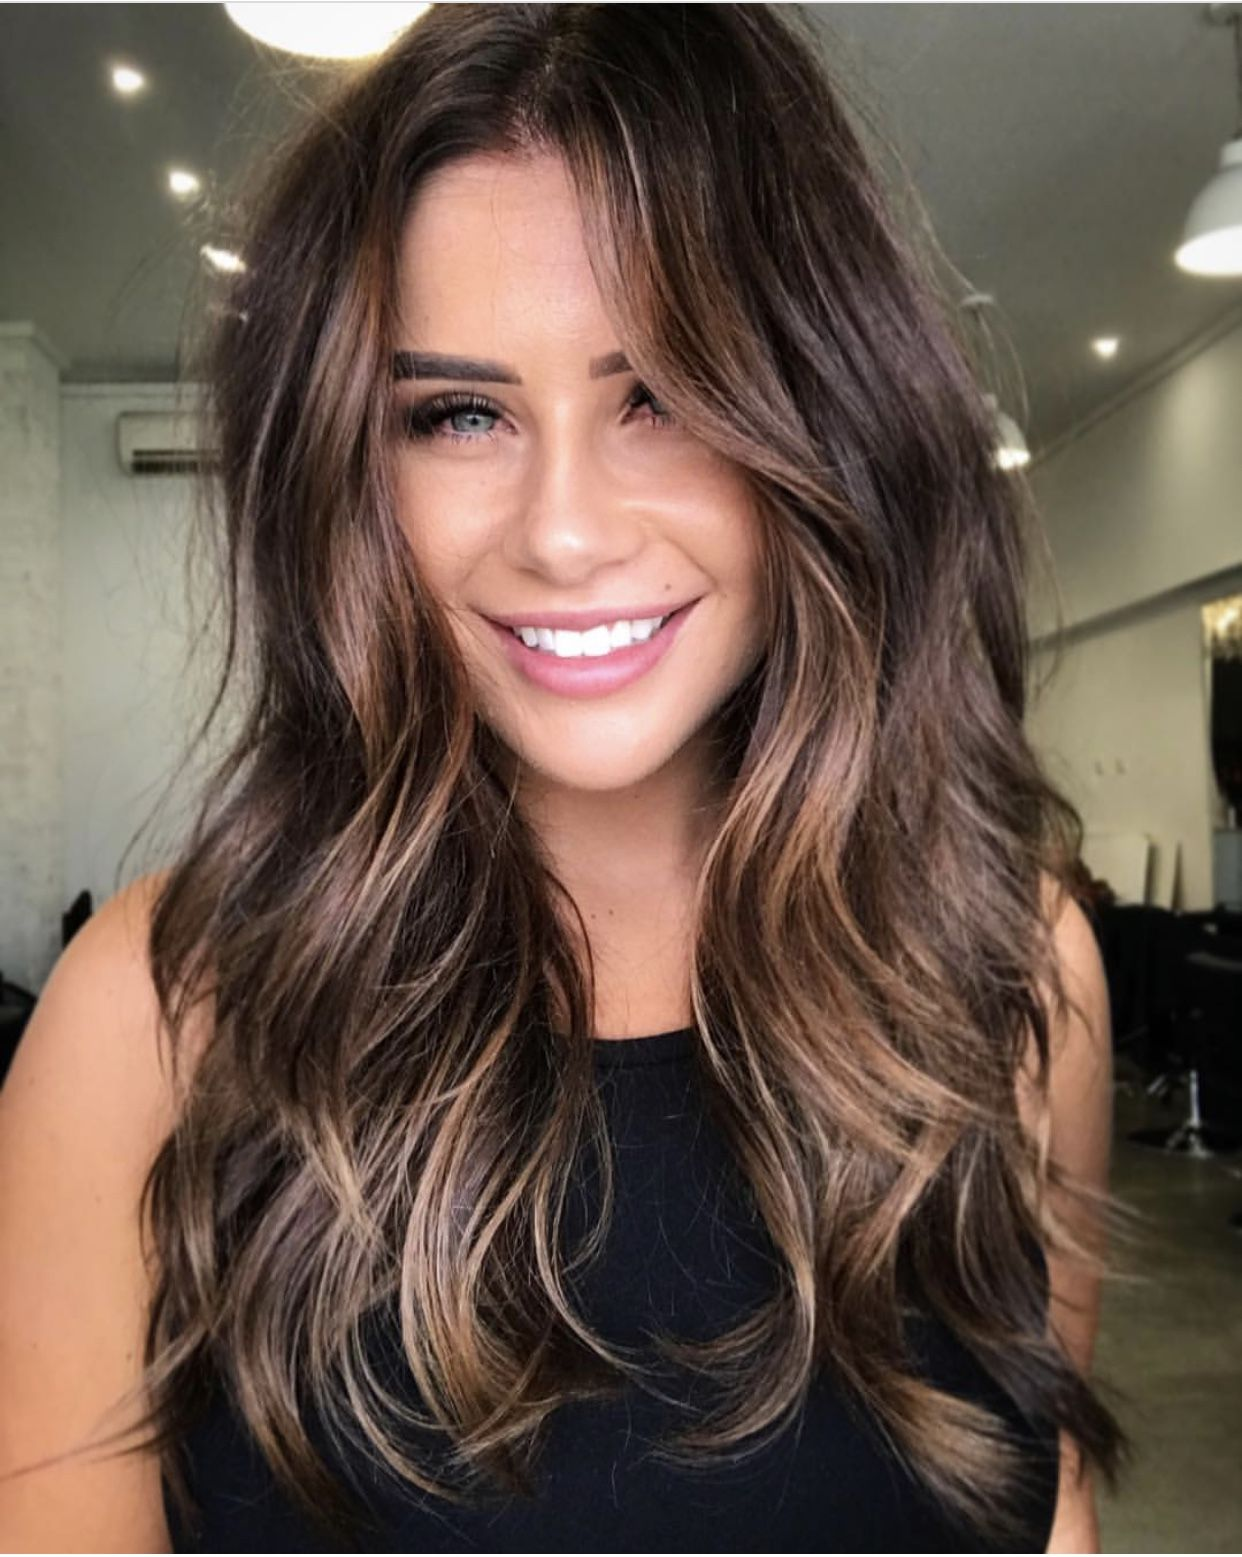 Obsessed With This Hair Maybe I Should Try To Grow My Hair This Long And Have It Waved Like This Subtle Balayage Brunette Hair Styles Balayage Hair